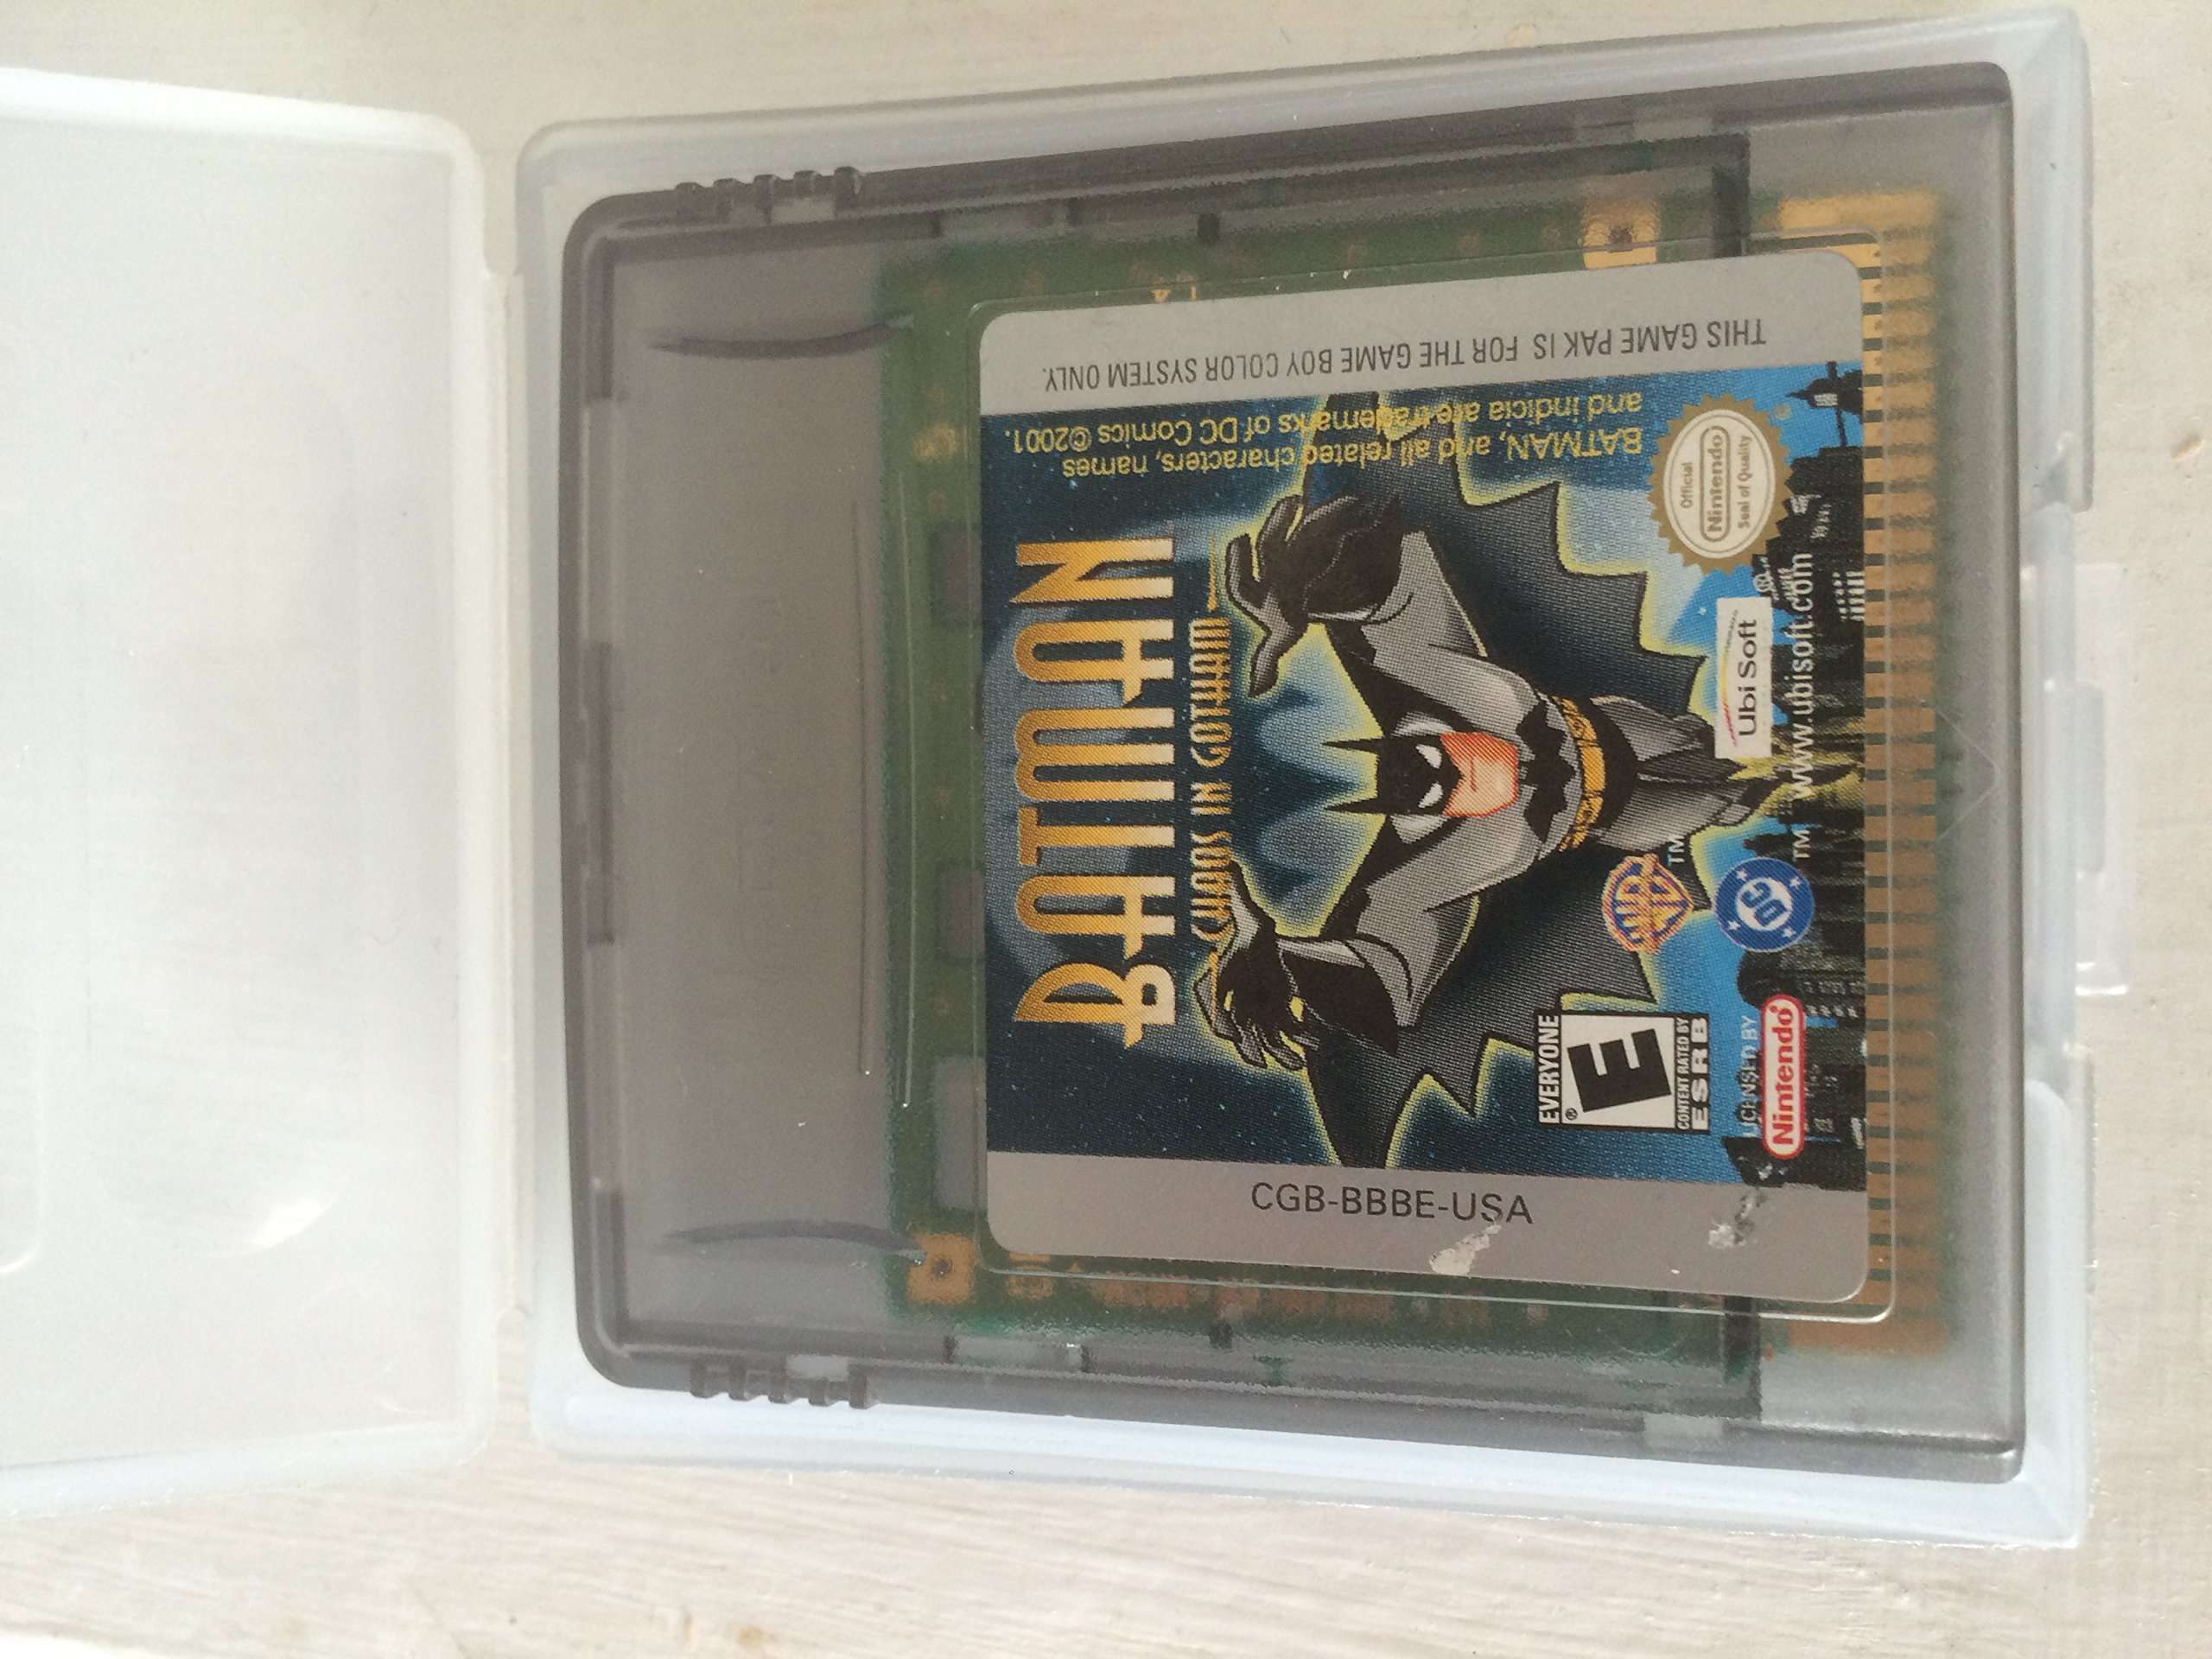 Amazoncom Batman Chaos In Gotham Nintendo Game Boy Color Video